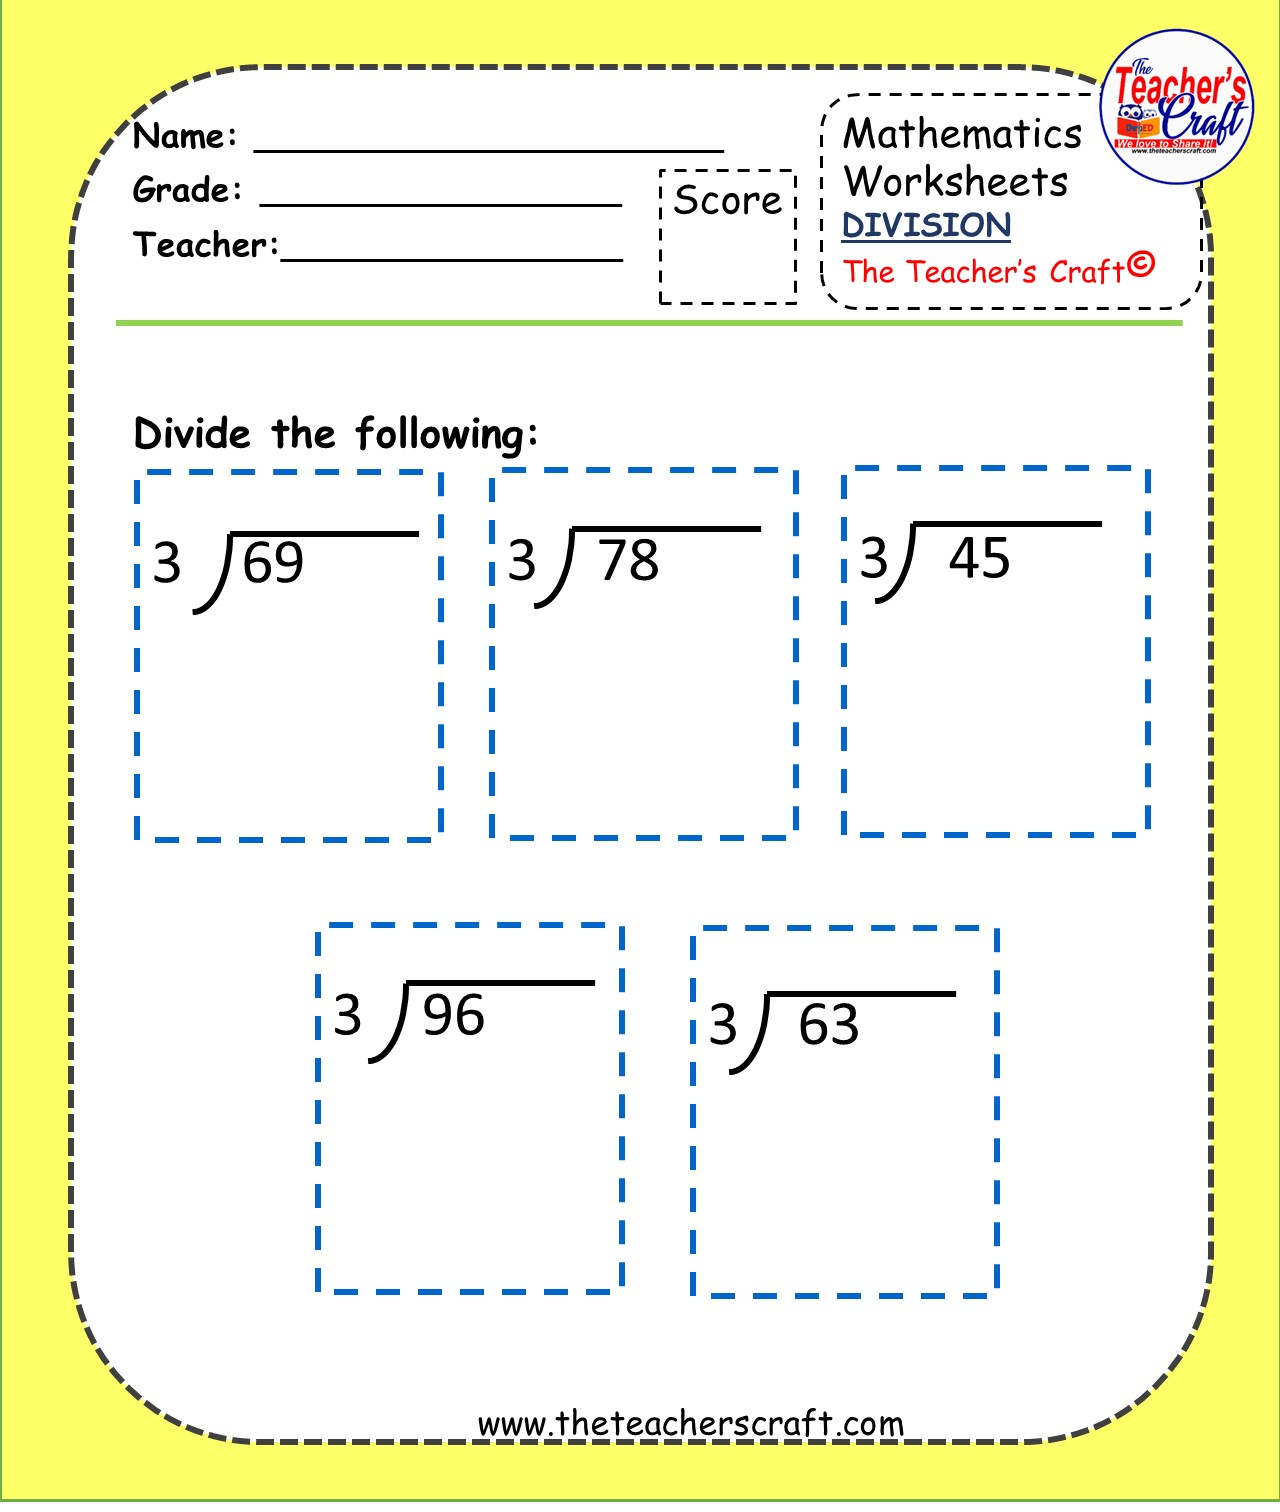 Division Worksheets Level 2